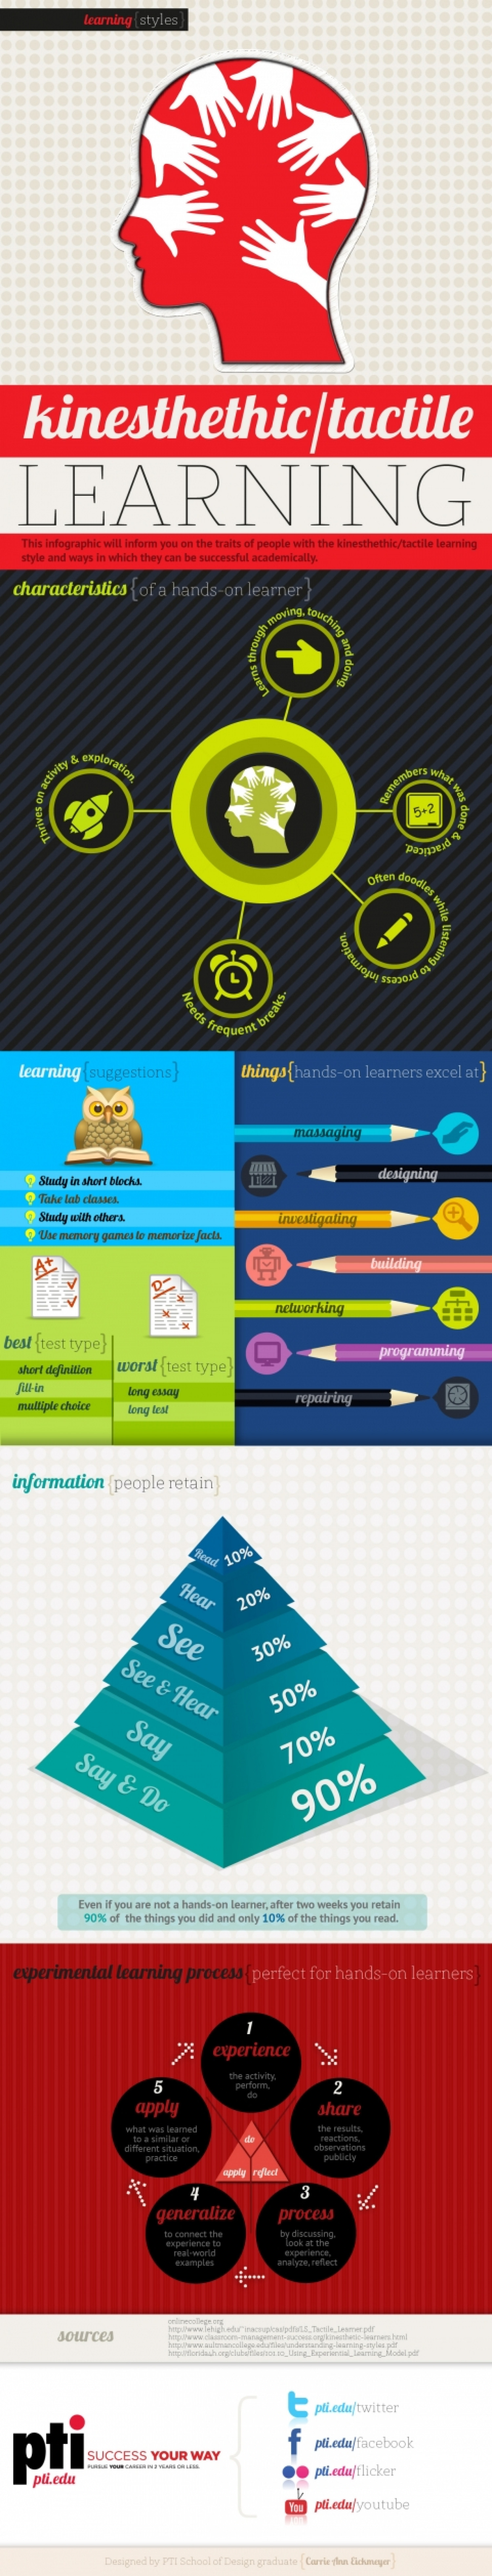 Exploring Kinesthetic/Tactile Learning Styles Infographic